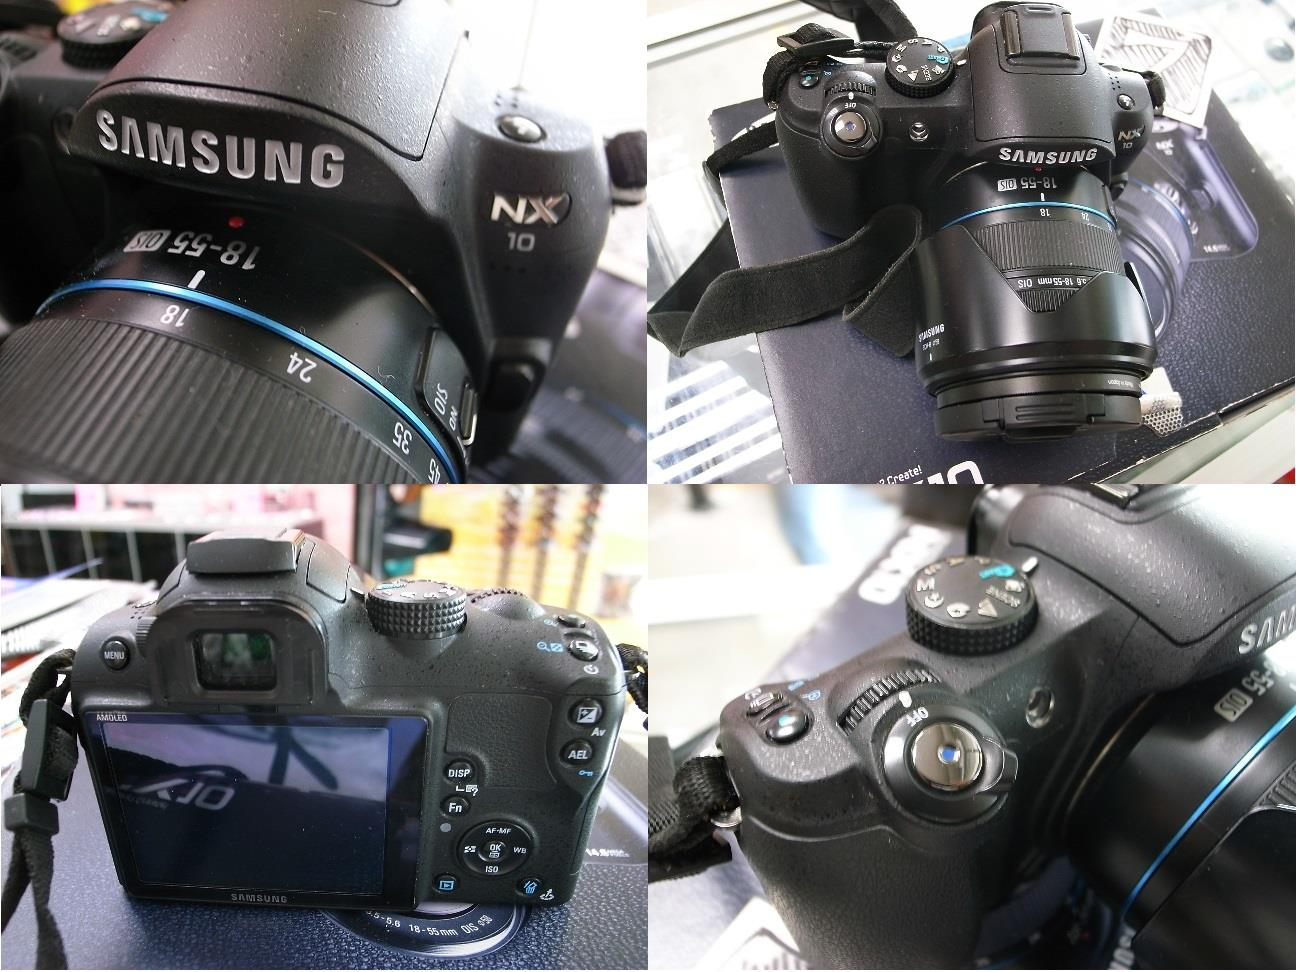 Samsung NX10 14.6MP 3in LCD DSLR Camera 18-55mm Lens Rm880